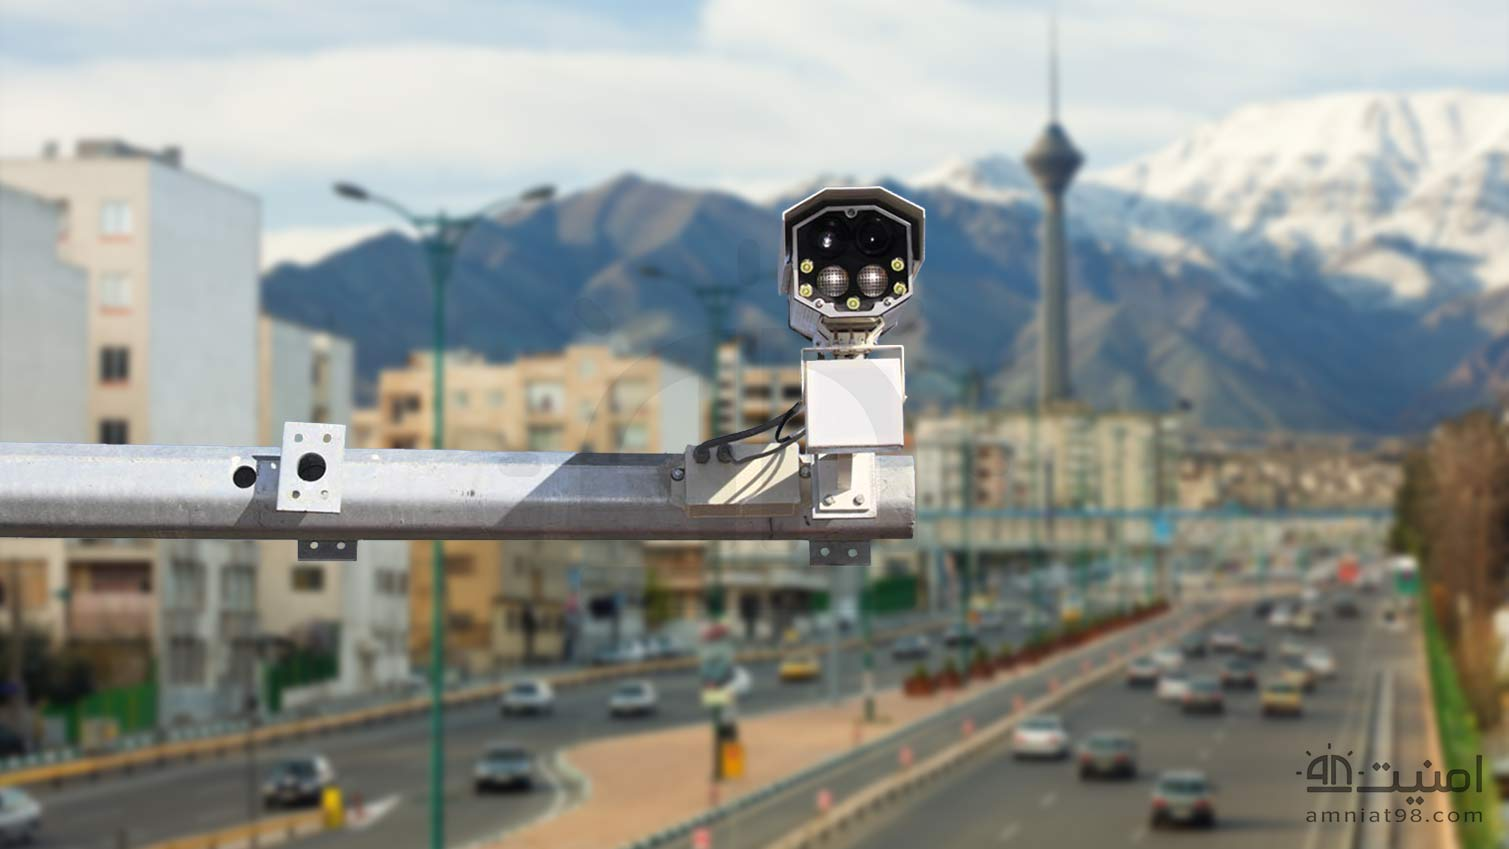 License Plate Recognition Cameras 5 amniat98 - دوربین پلاک خوان + ویدیو